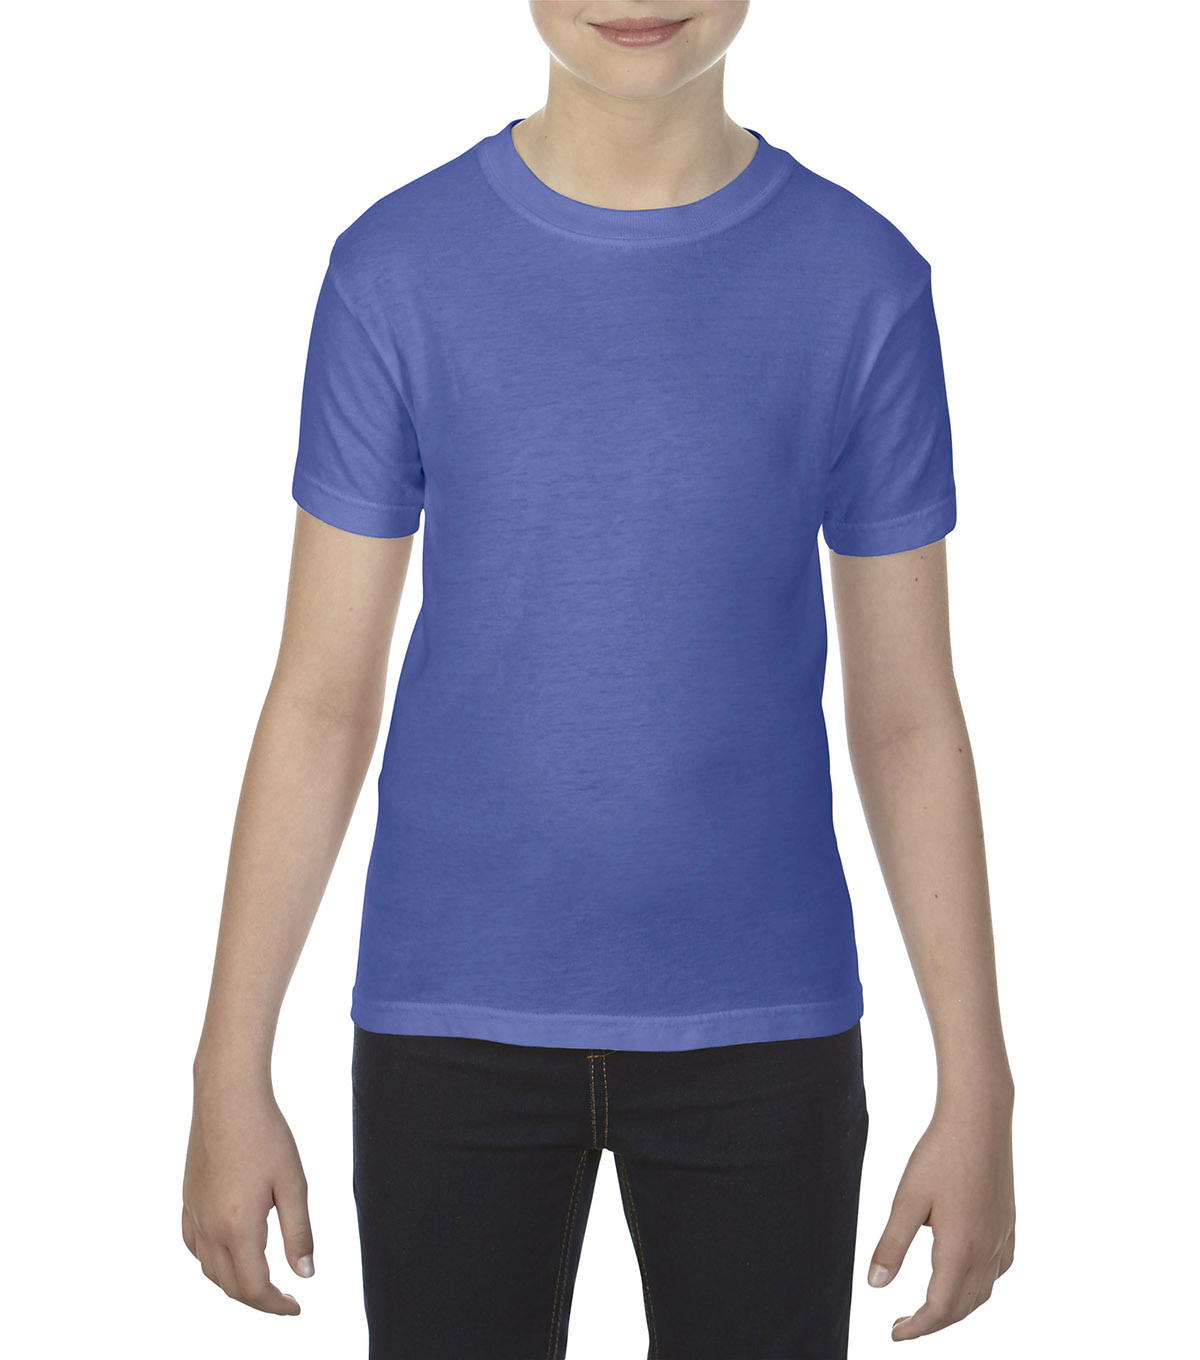 Gildan Comfort Colors 9018 Small Youth T-Shirt, Floblue